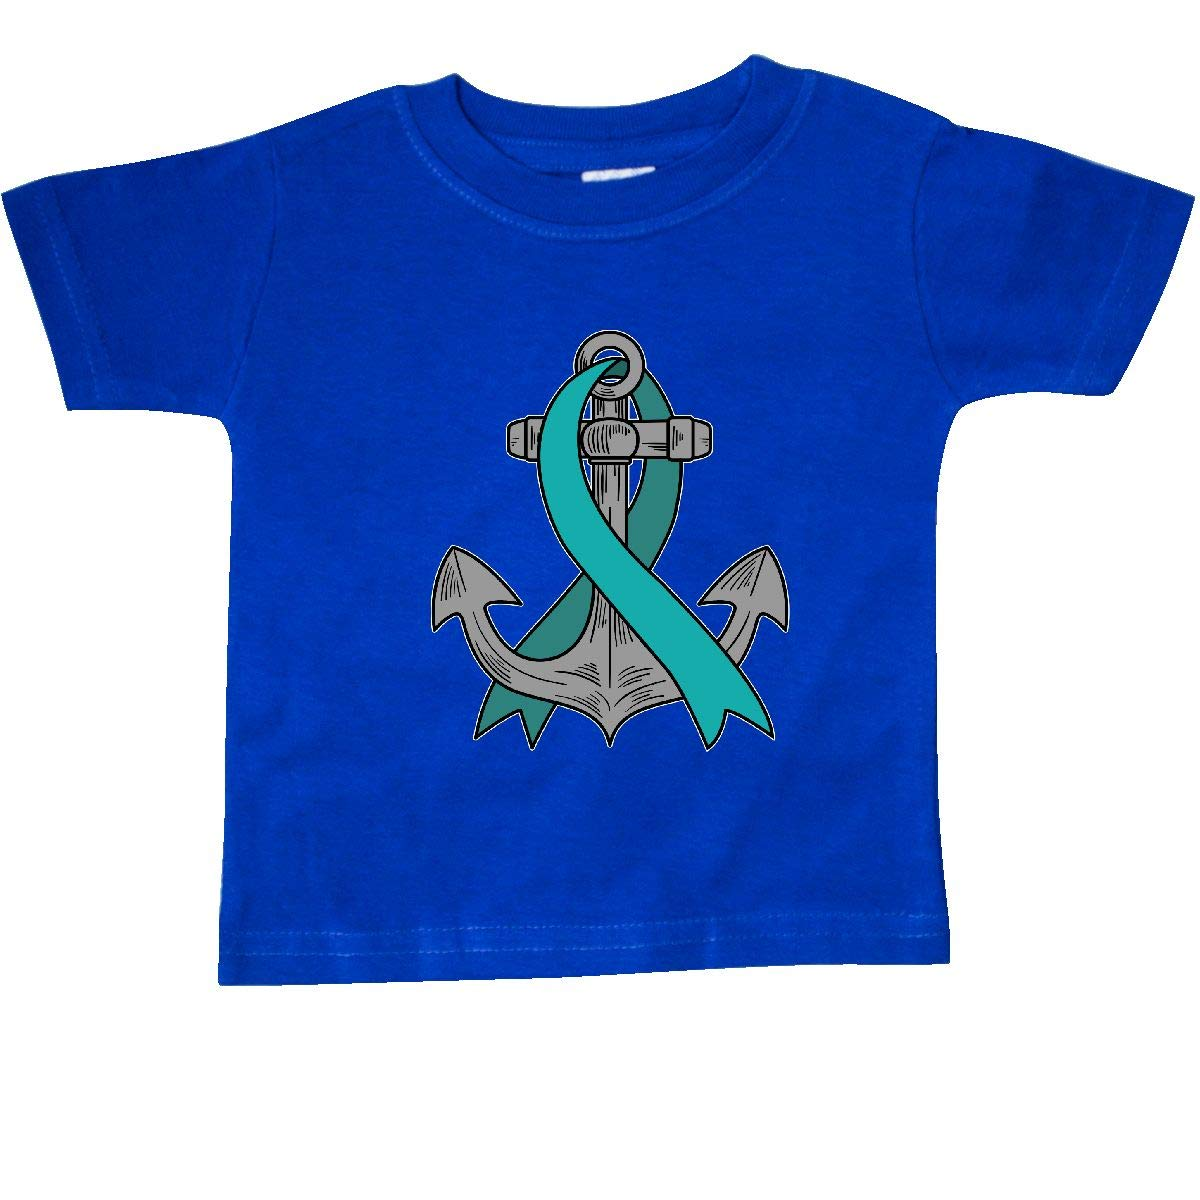 inktastic Anchor with Teal Ribbon for Ovarian Cancer Awareness Baby T-Shirt